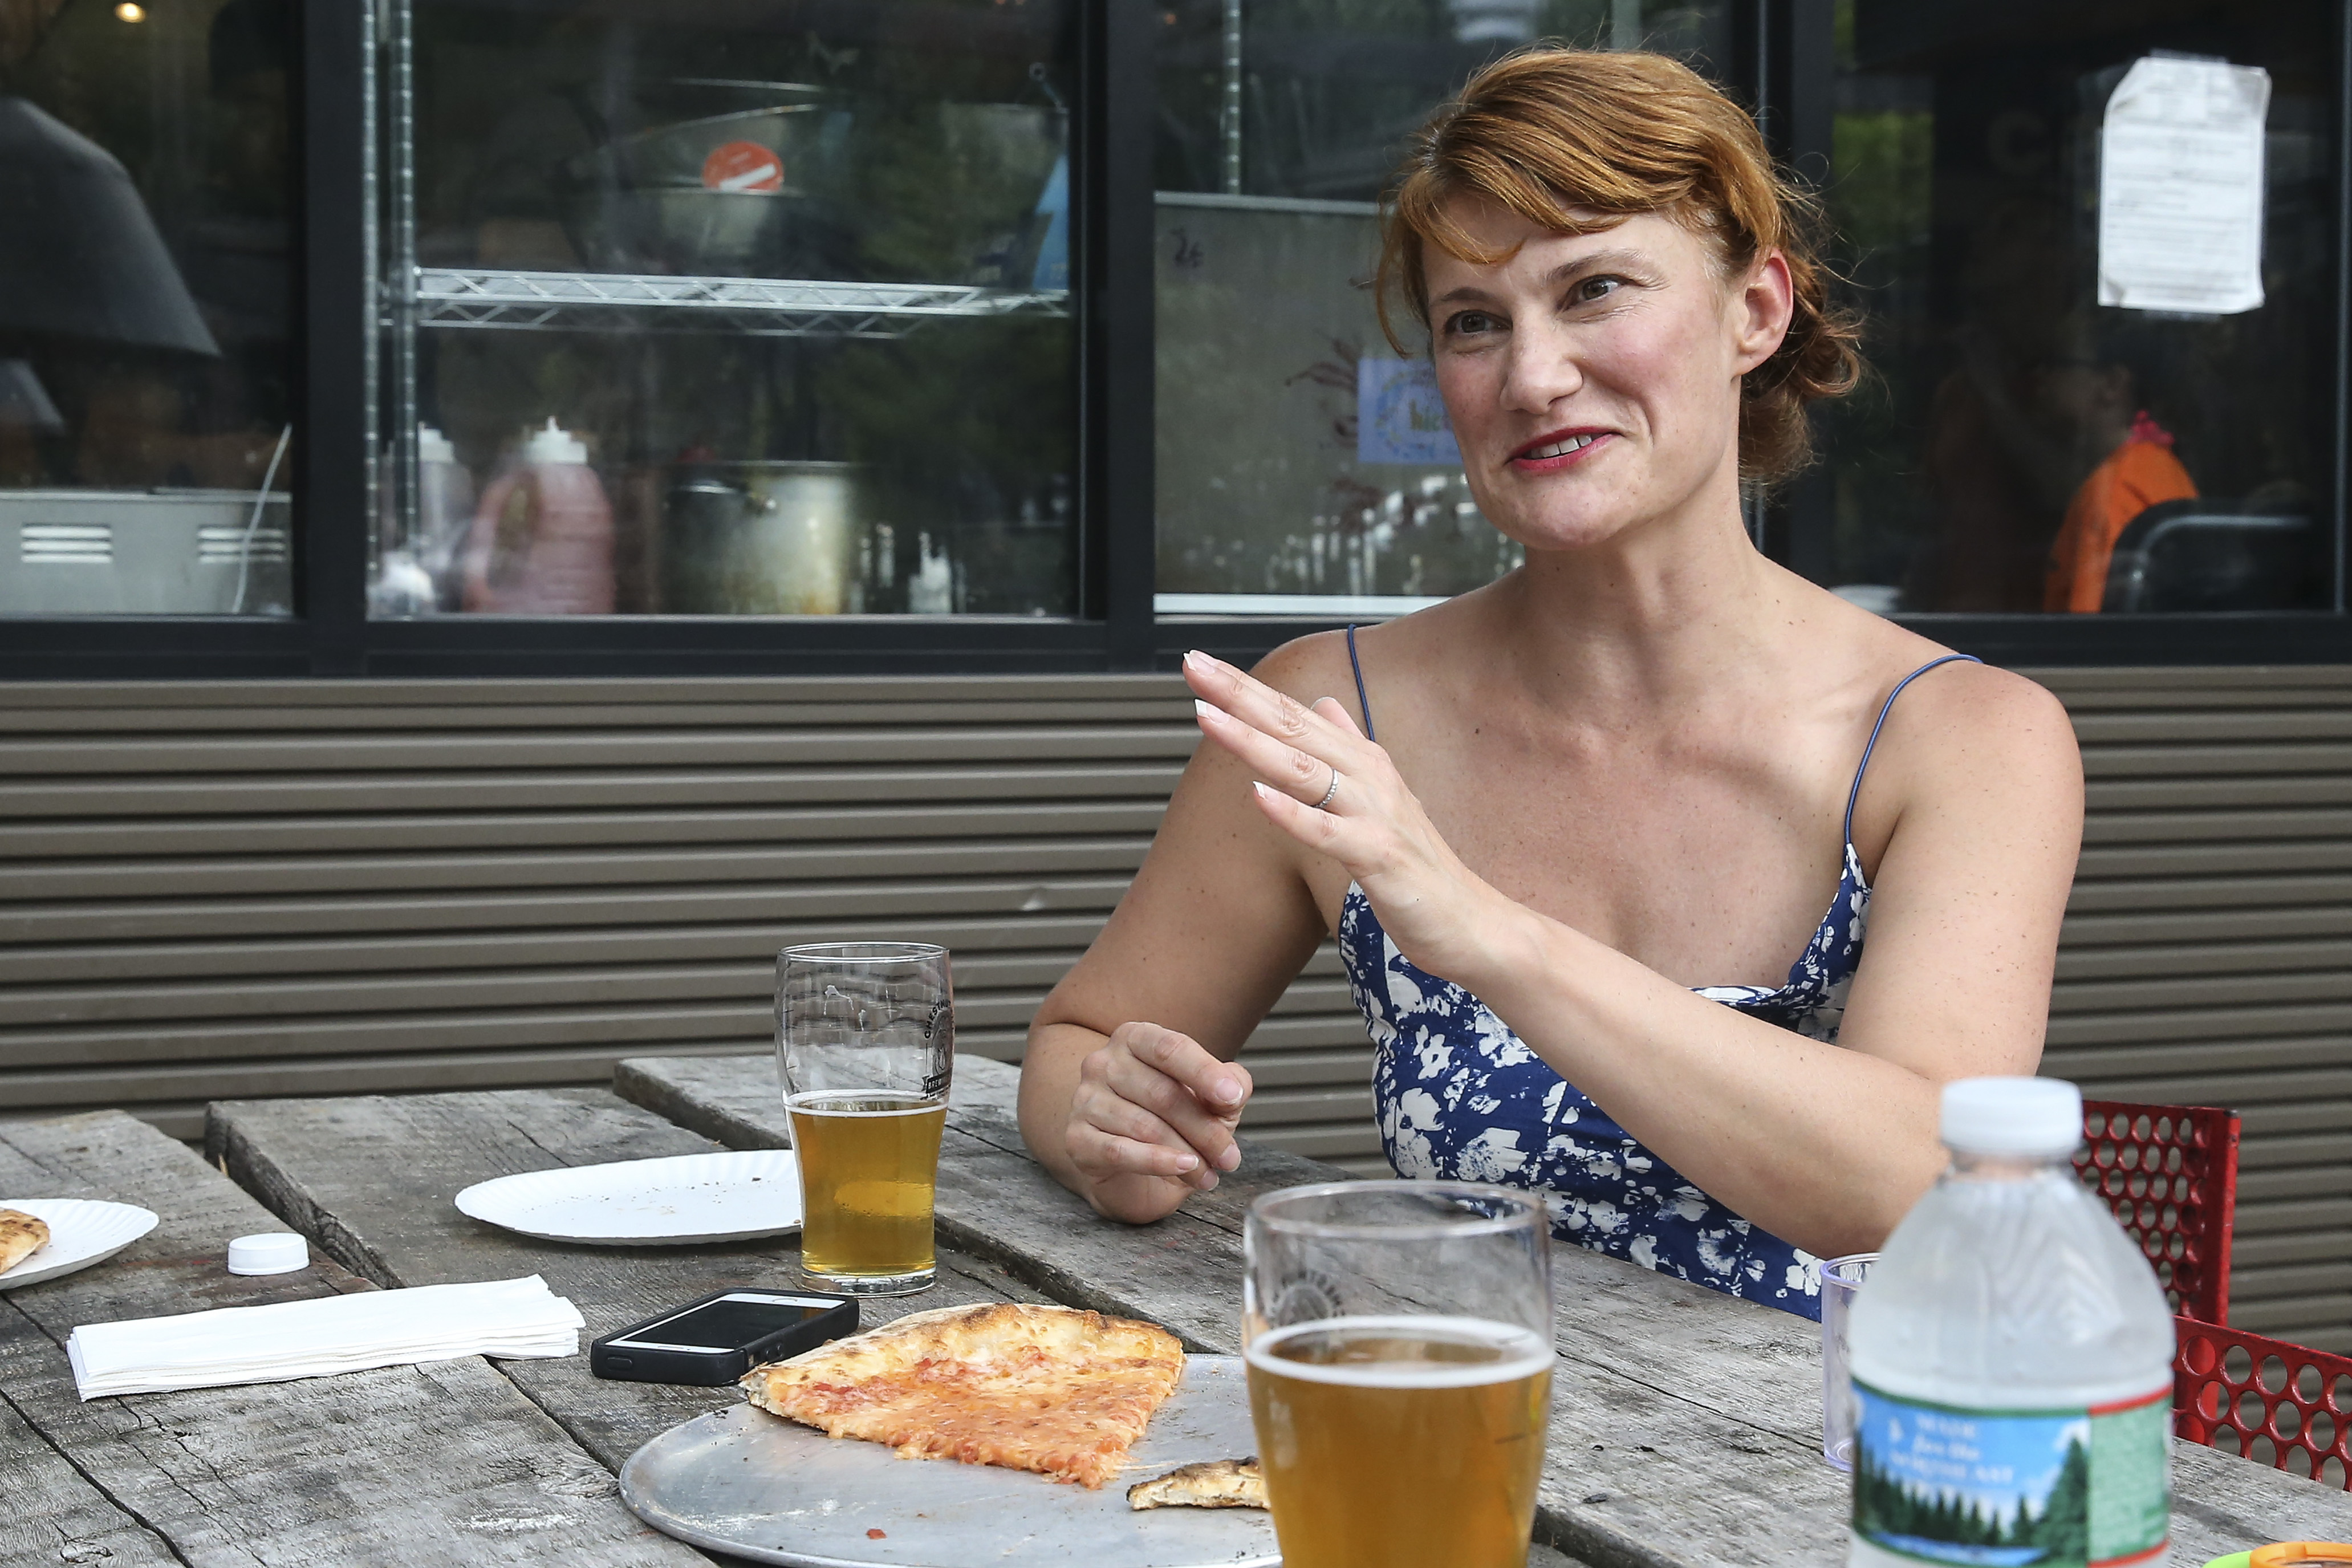 Tiffica Benza, says the beer garden is a unique space for young families.